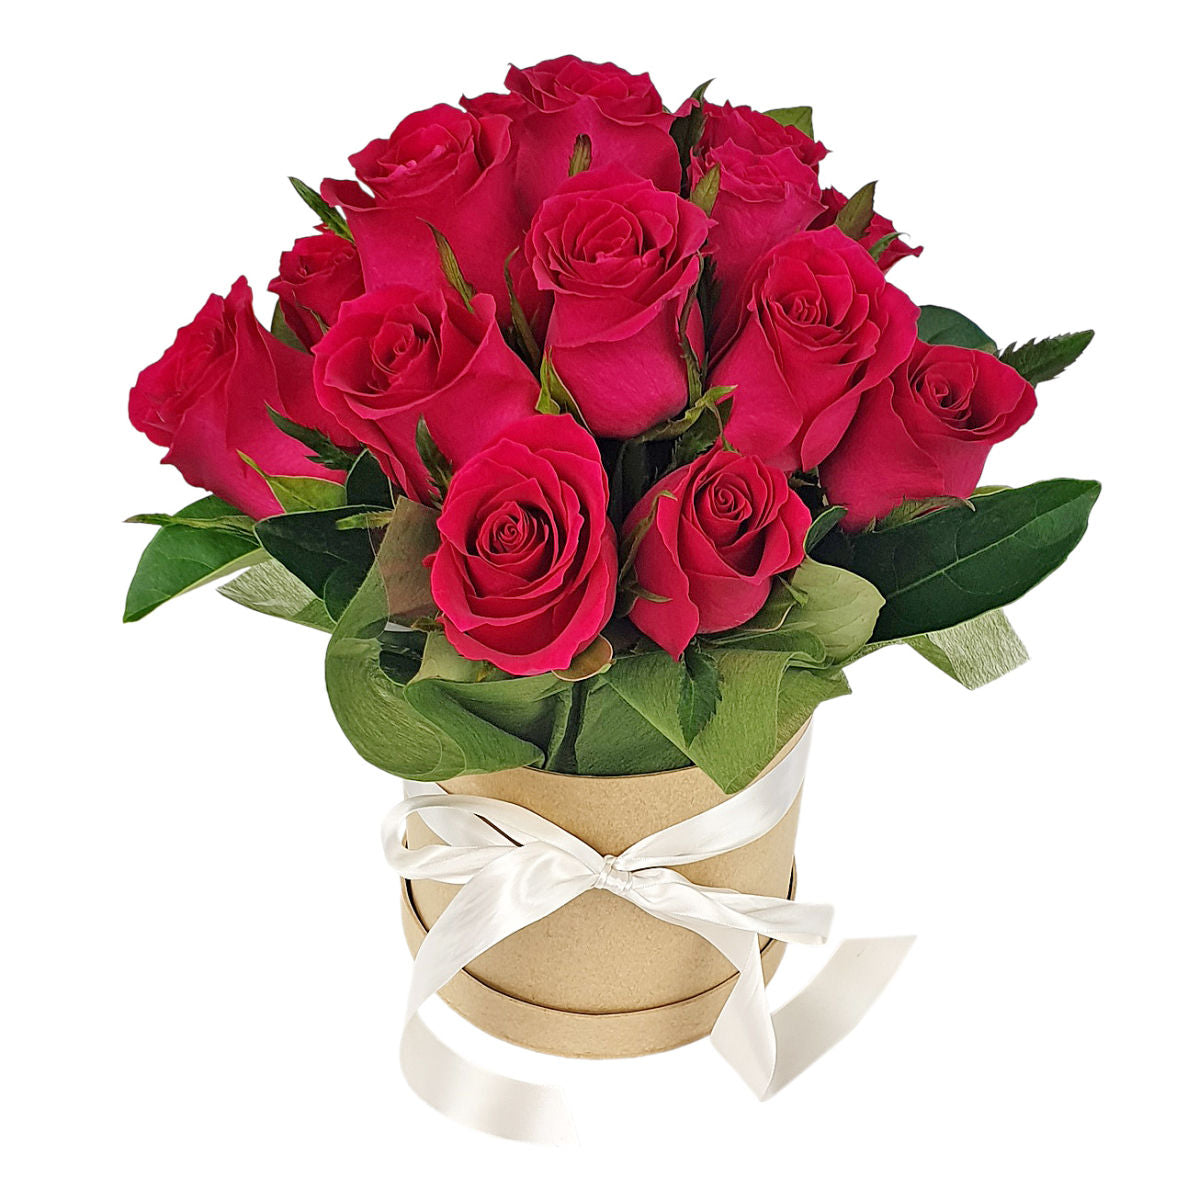 Red Roses Round Box - So Fancy